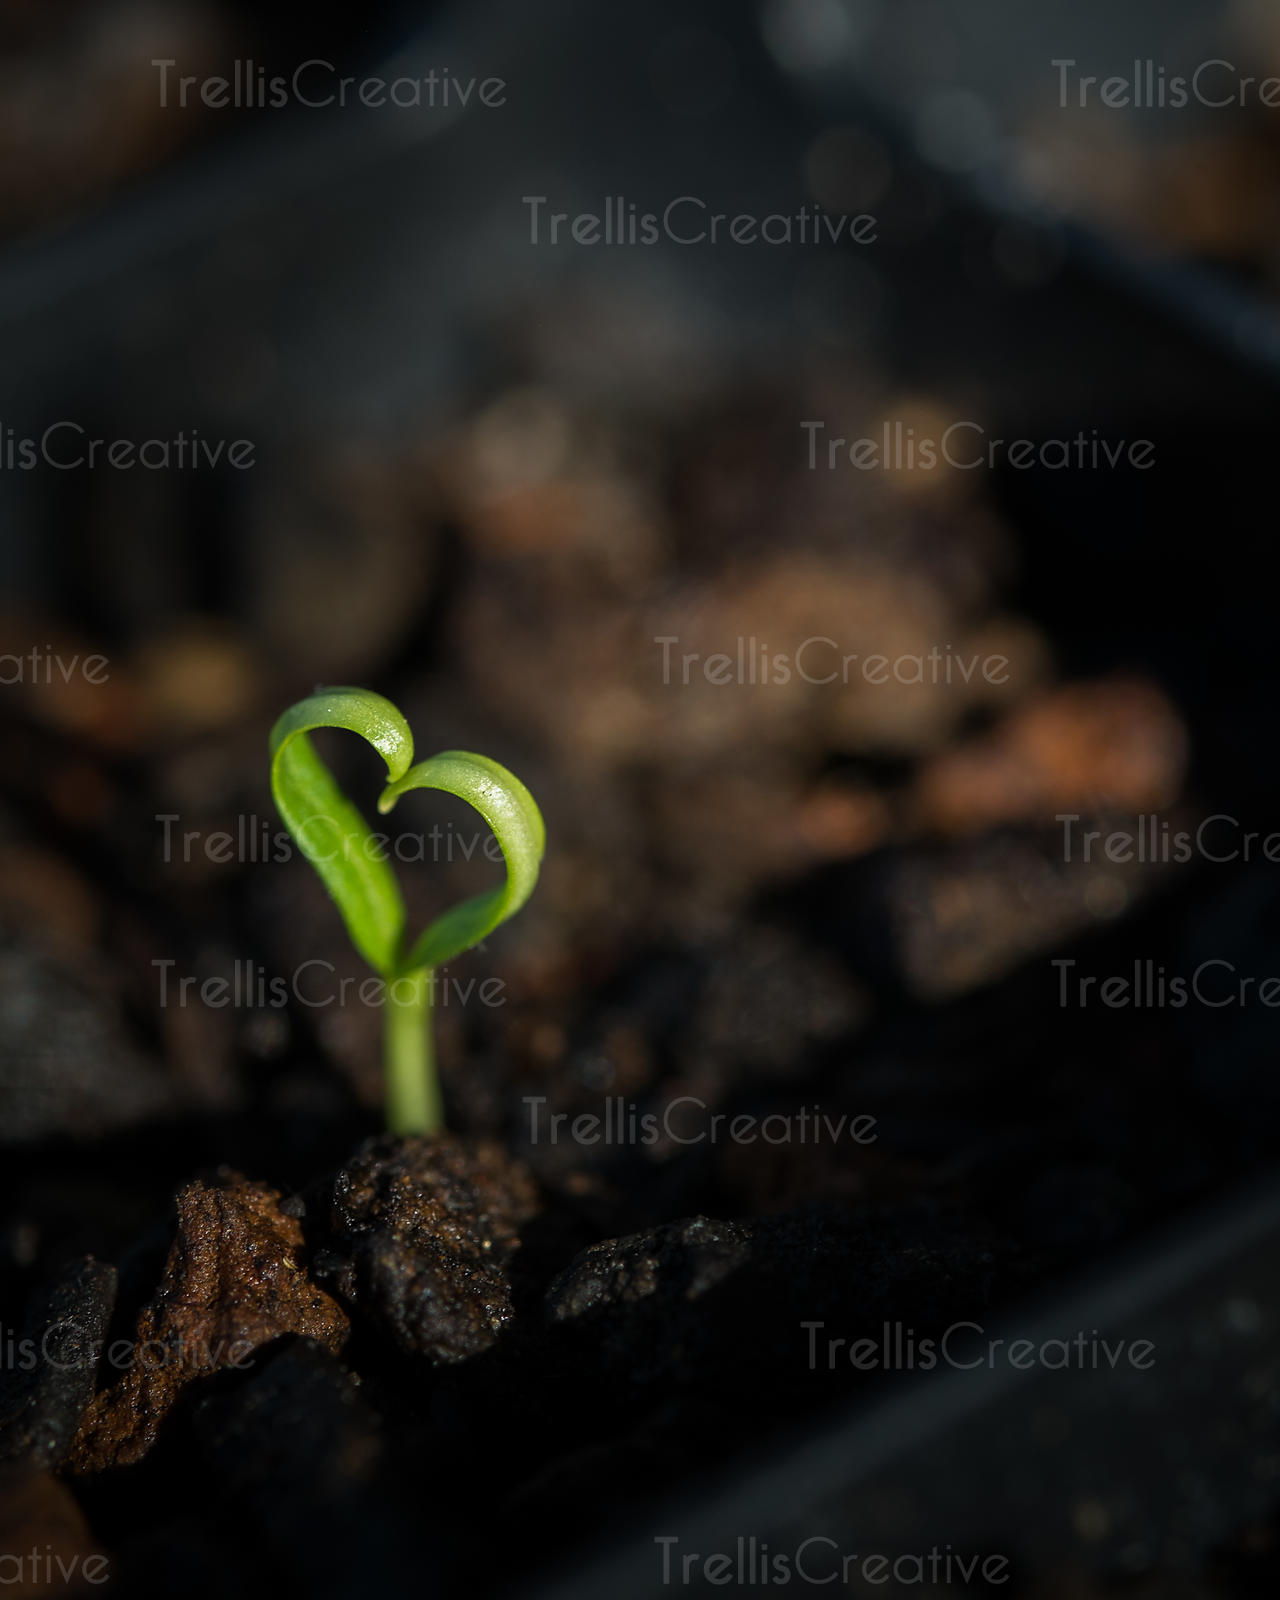 Close-up of seedling forming a heart shape growing in soil